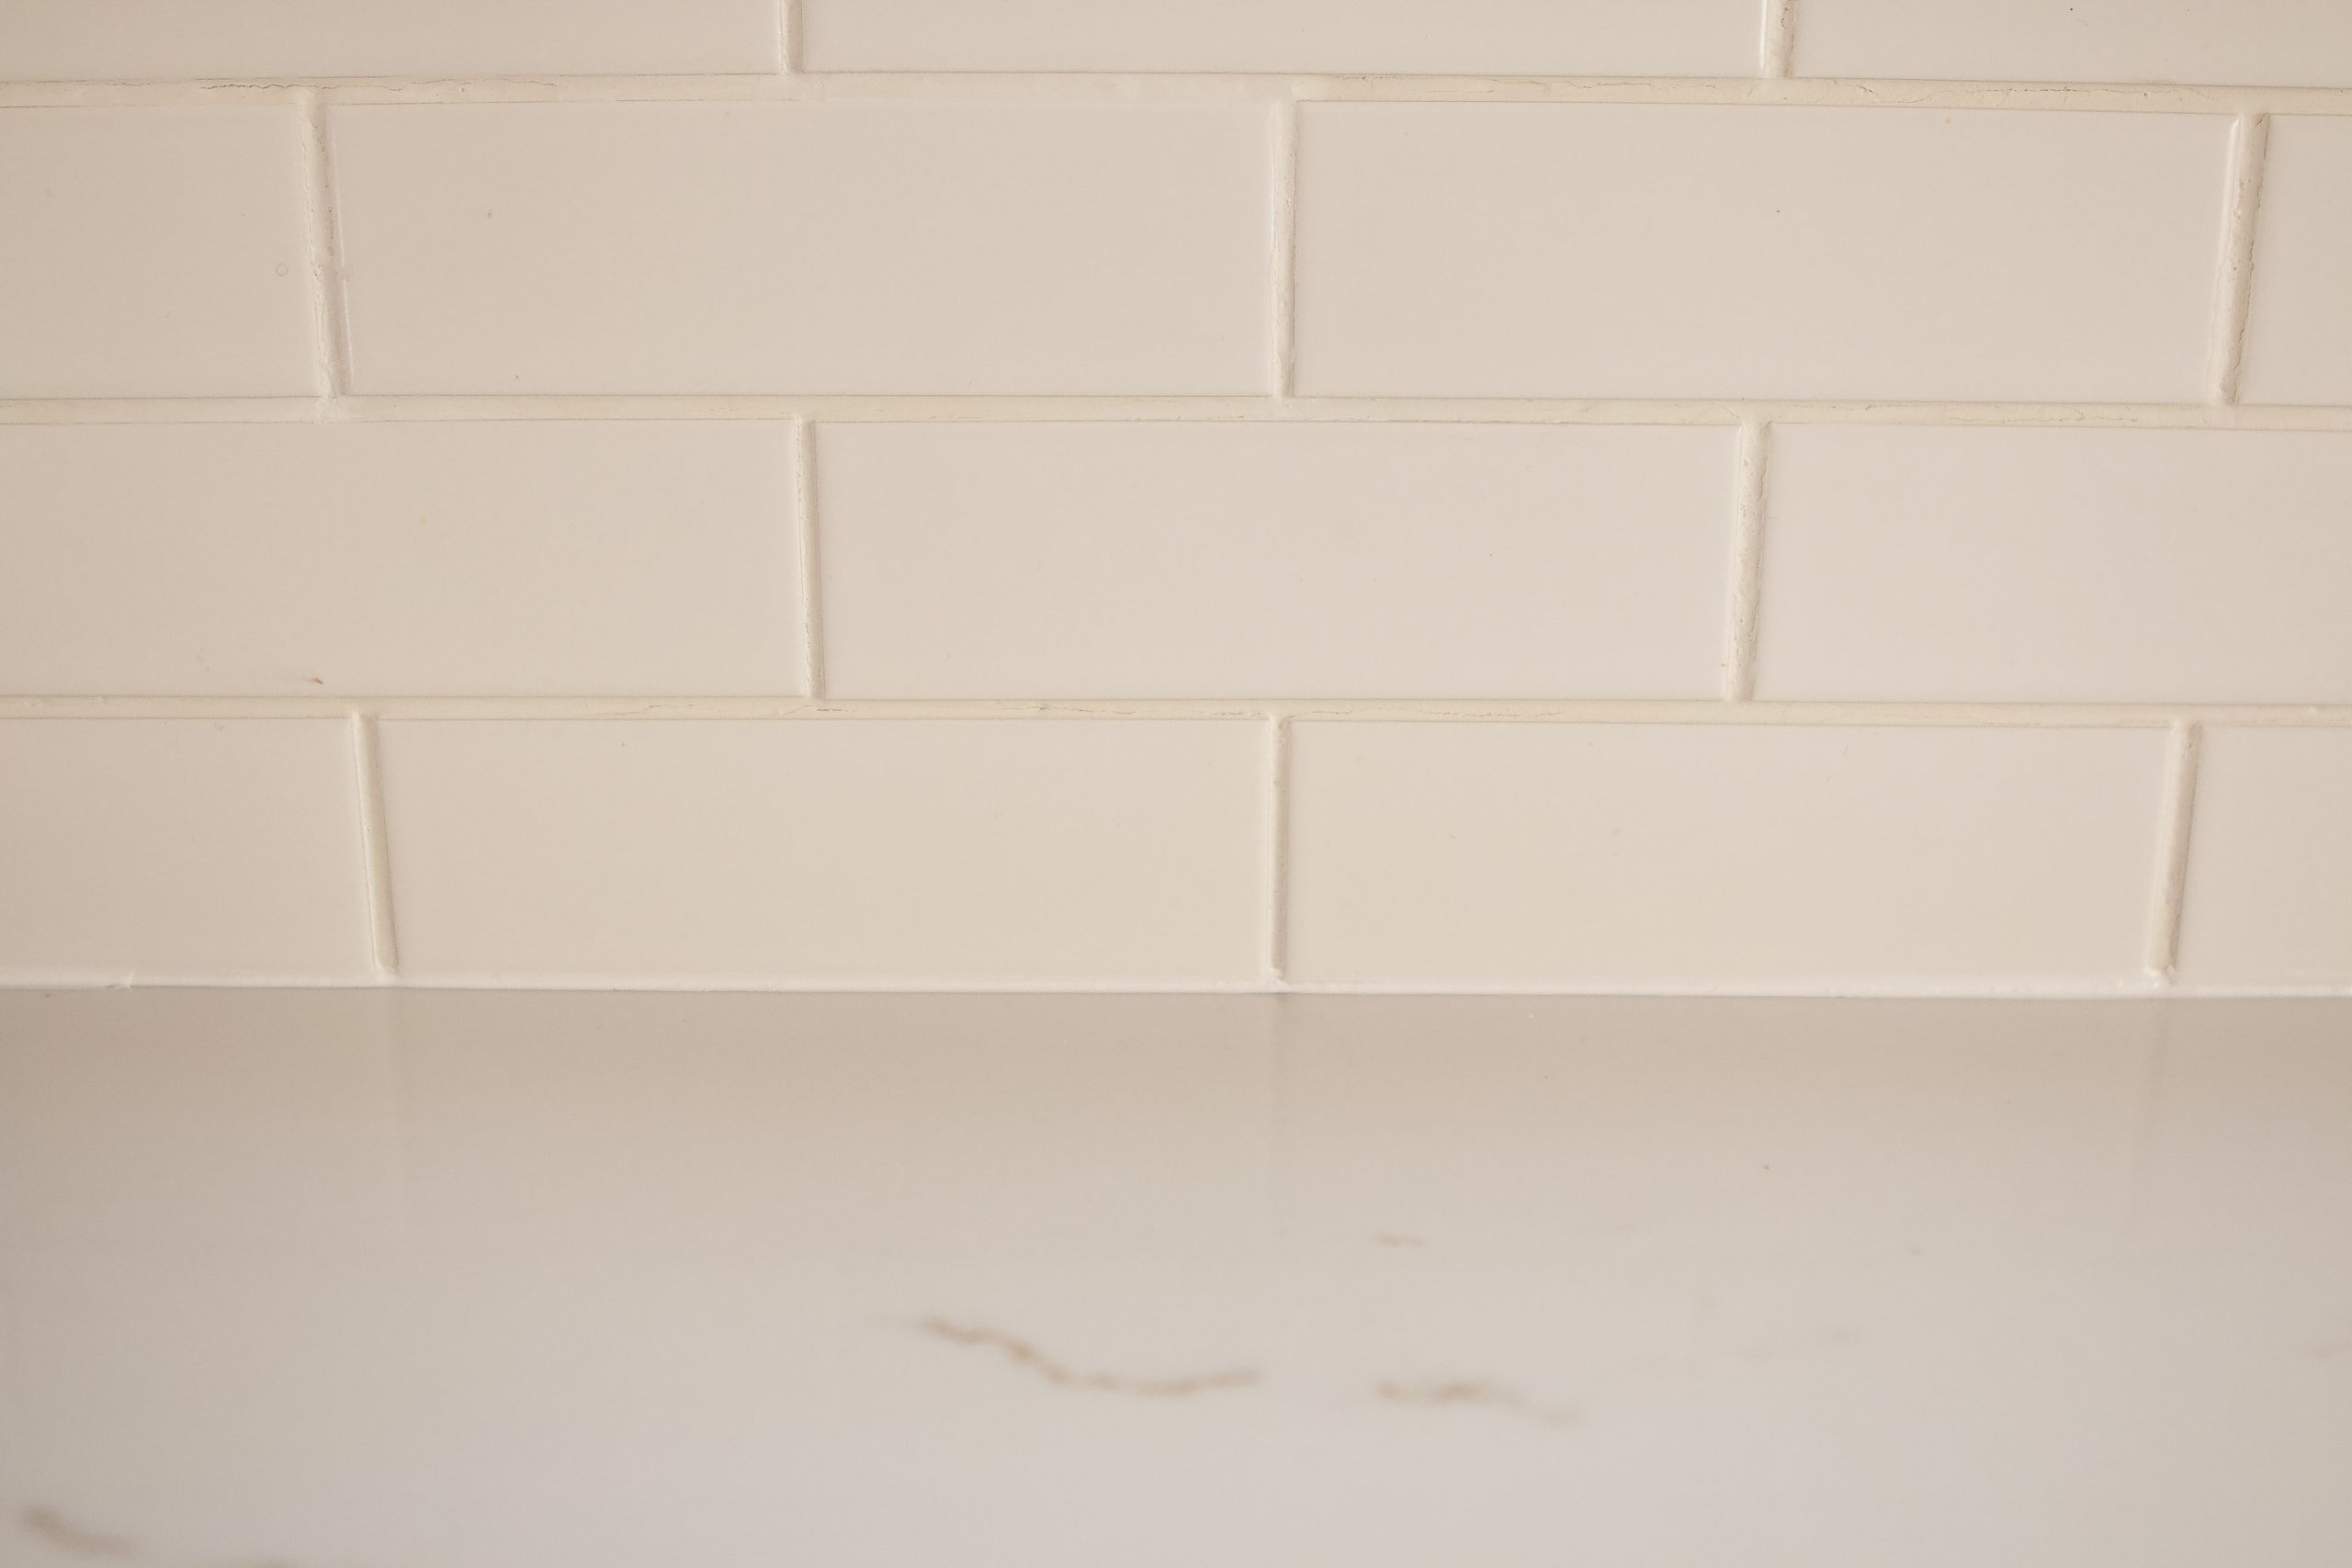 How to fix this tiling mistake